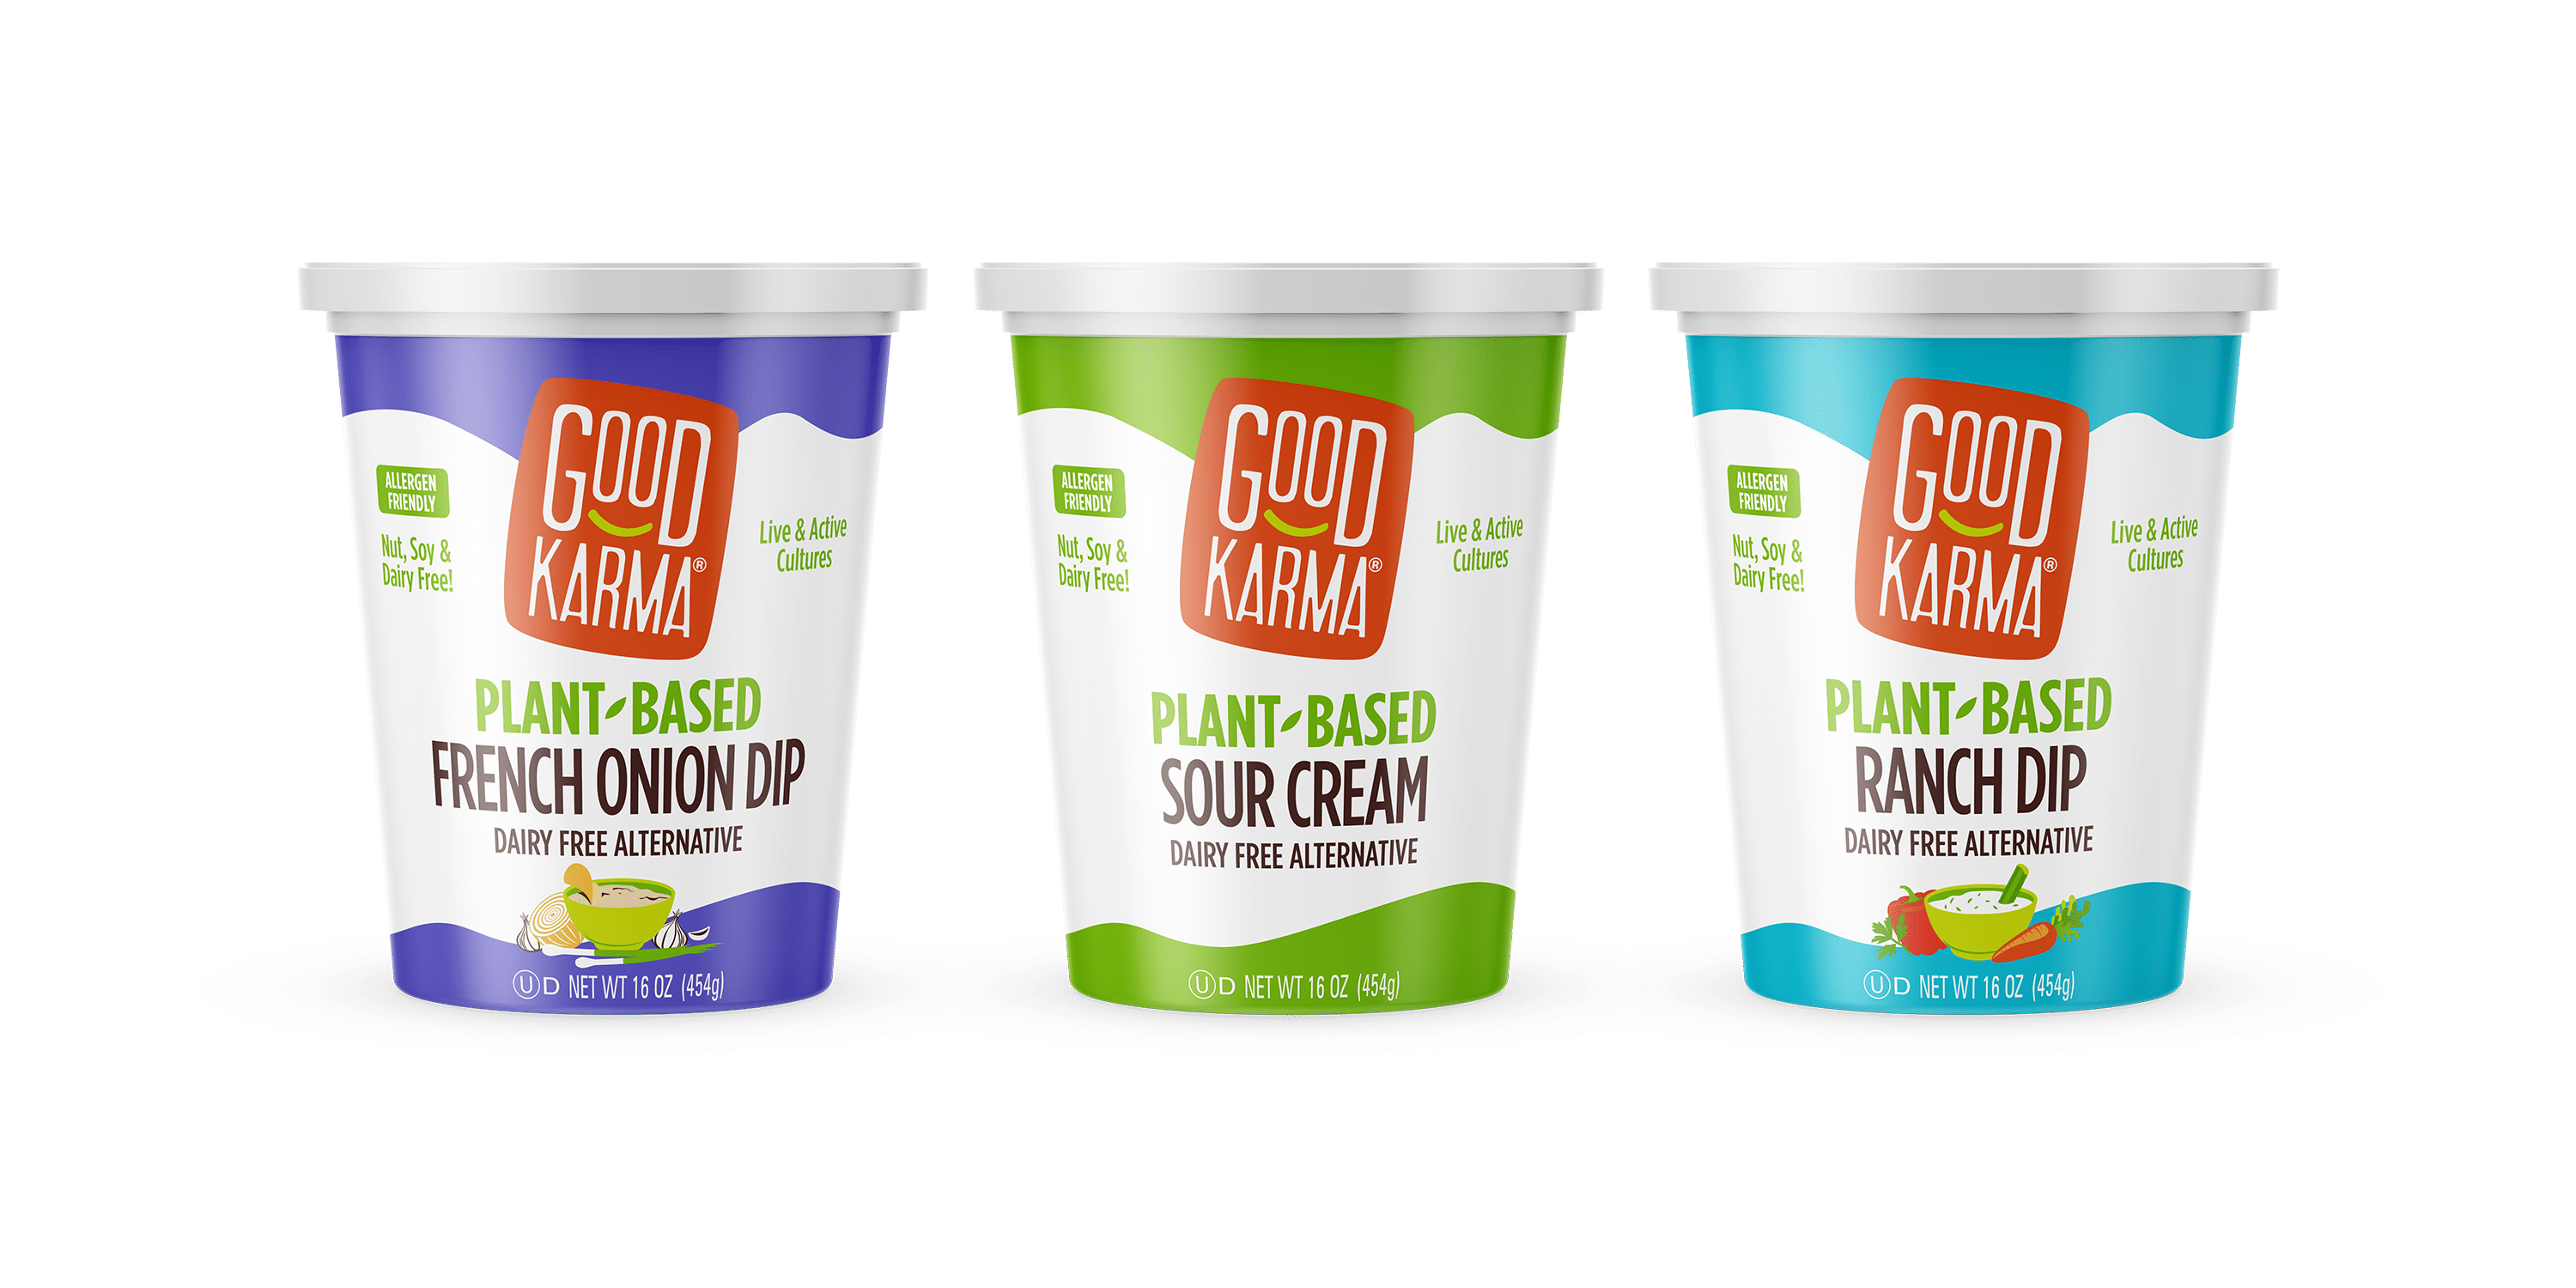 Good Karma Foods Announces Launch of Plant-Based Dips and Sour Cream